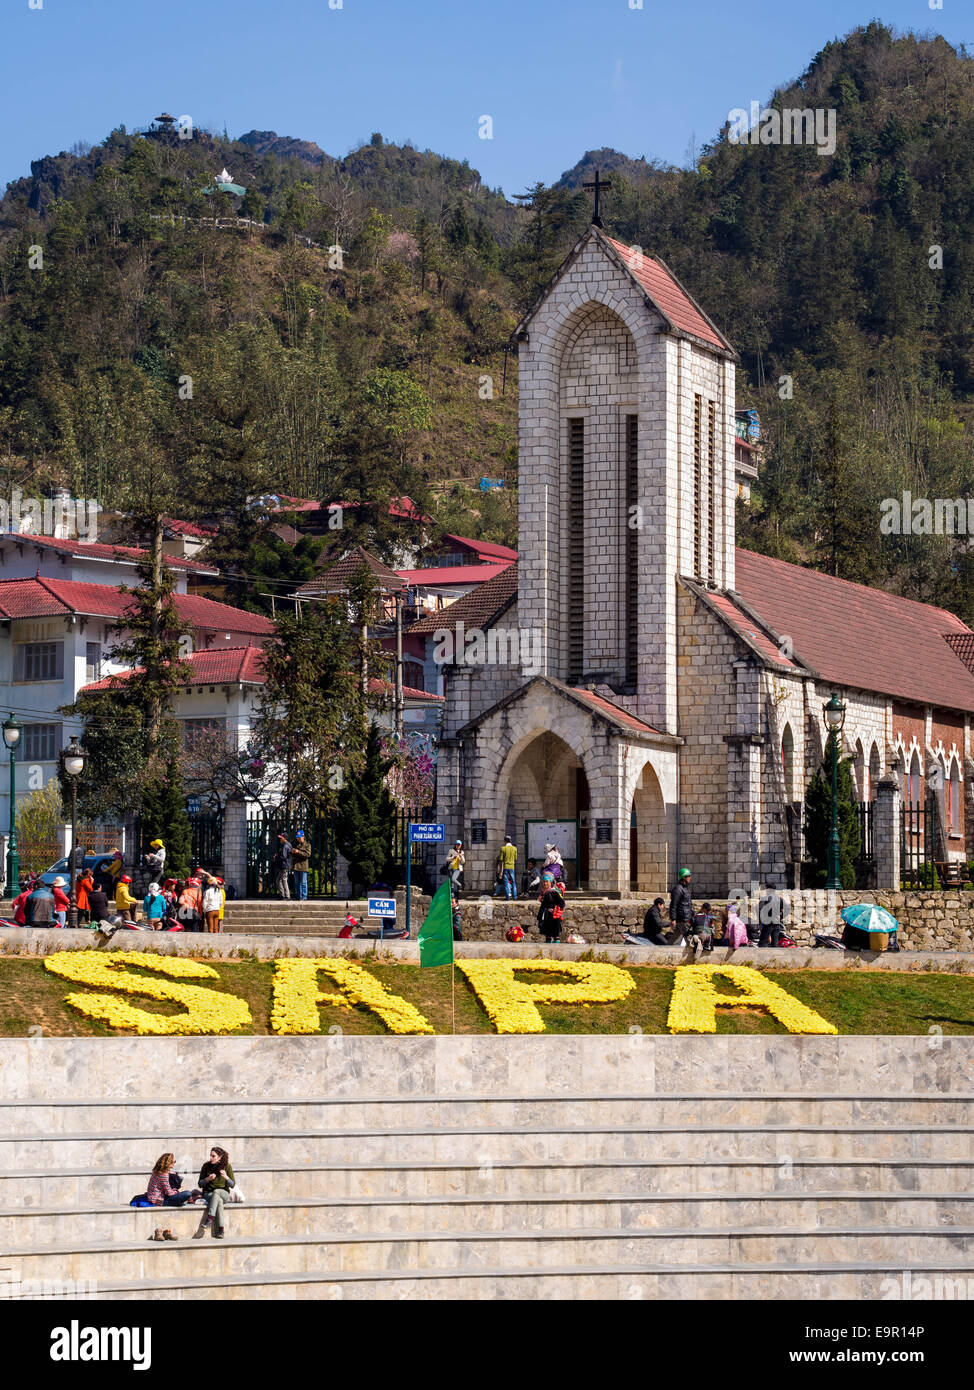 The Holy Rosary church and people around the main square of Sapa town, Lao Cai Province, Vietnam. Stock Photo